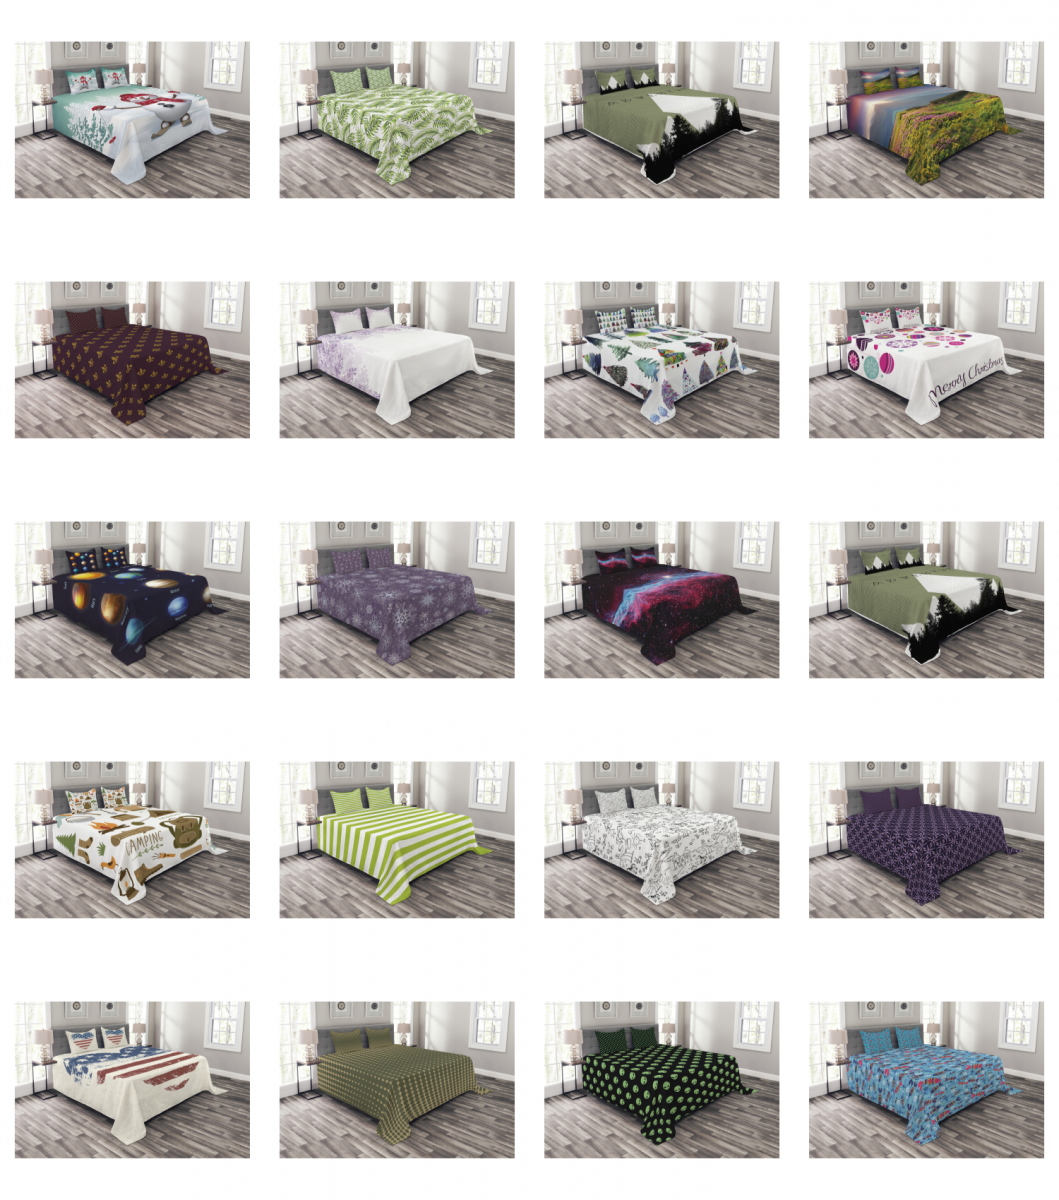 Ambesonne Bedspread with Pillow Shams Bed Coverlet Set Quilt